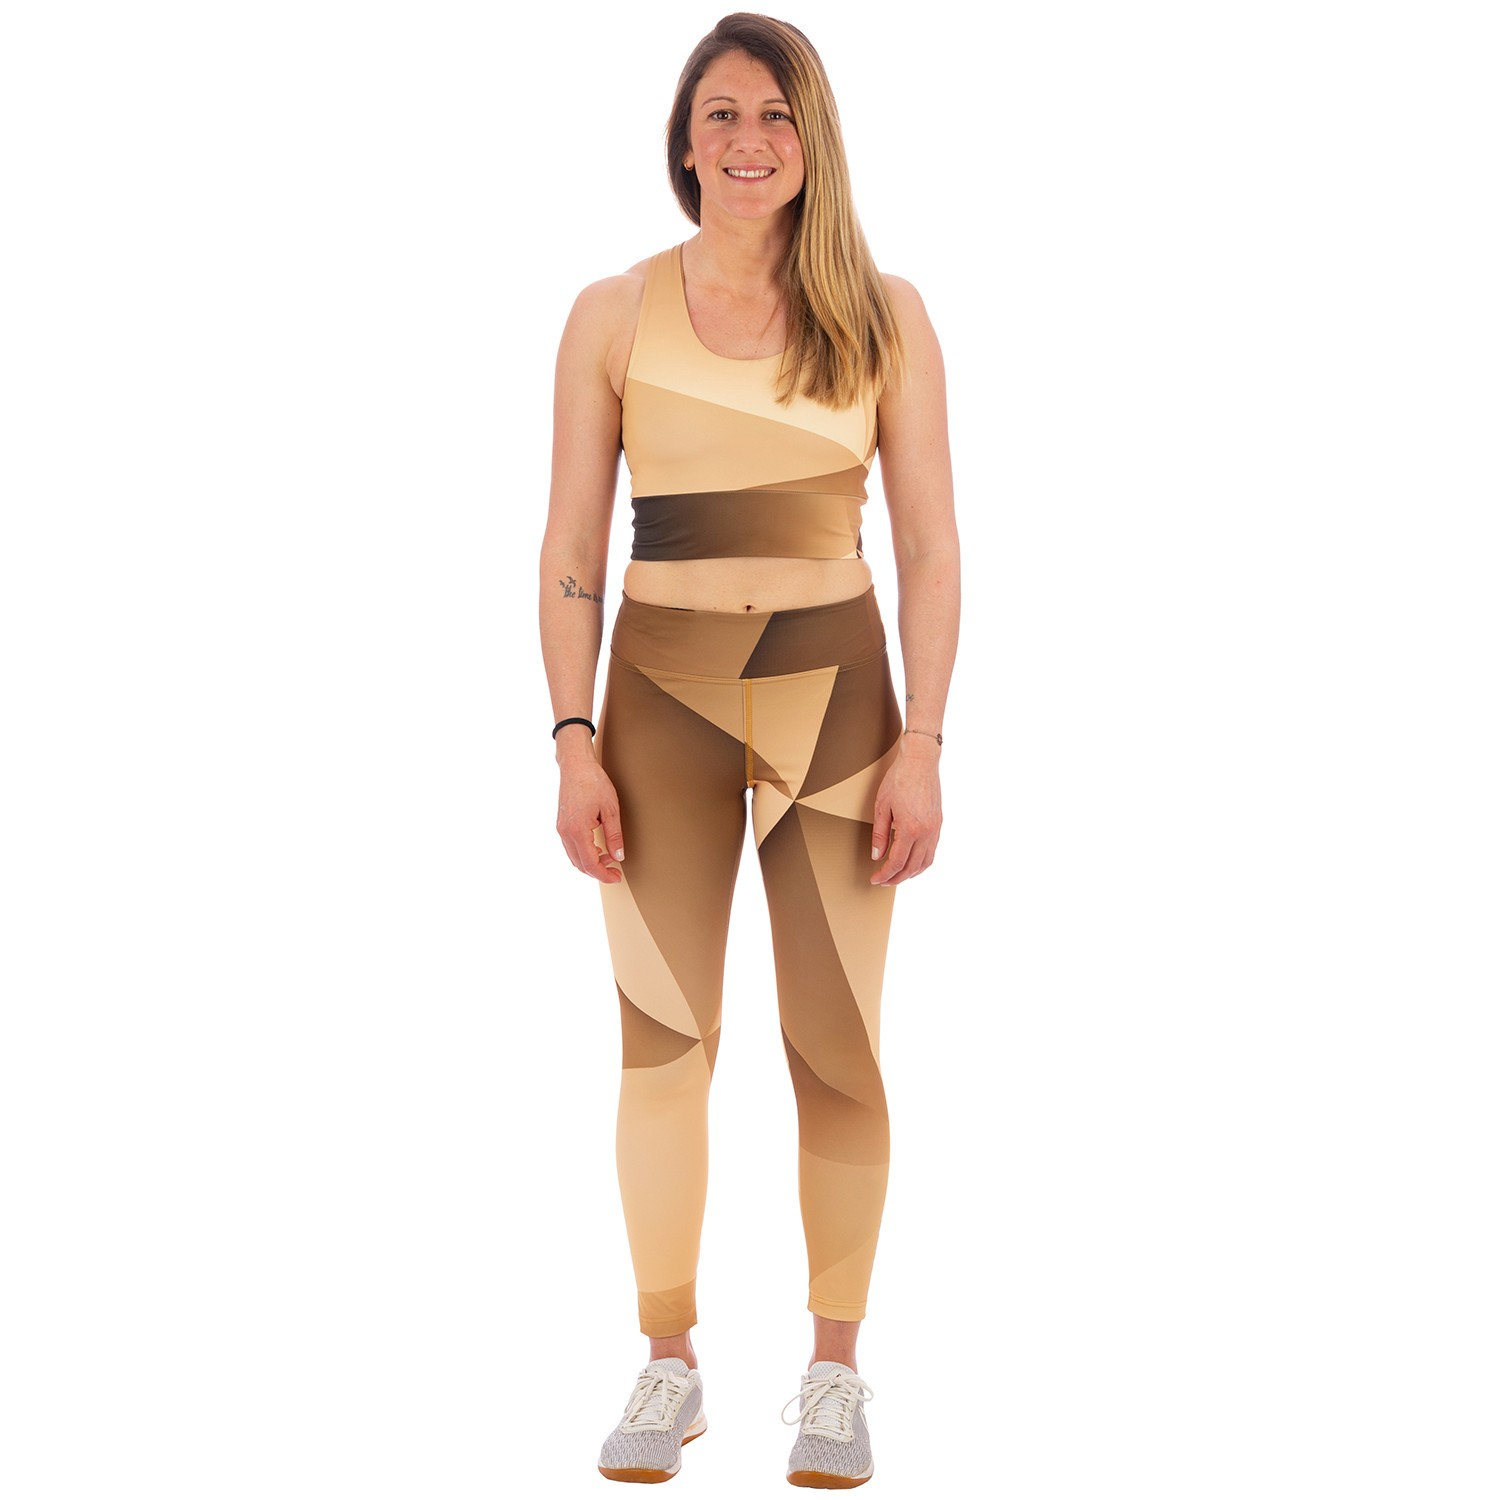 STOAK GOLDEN SAND - GOLDEN SAND Package Top + Leggings